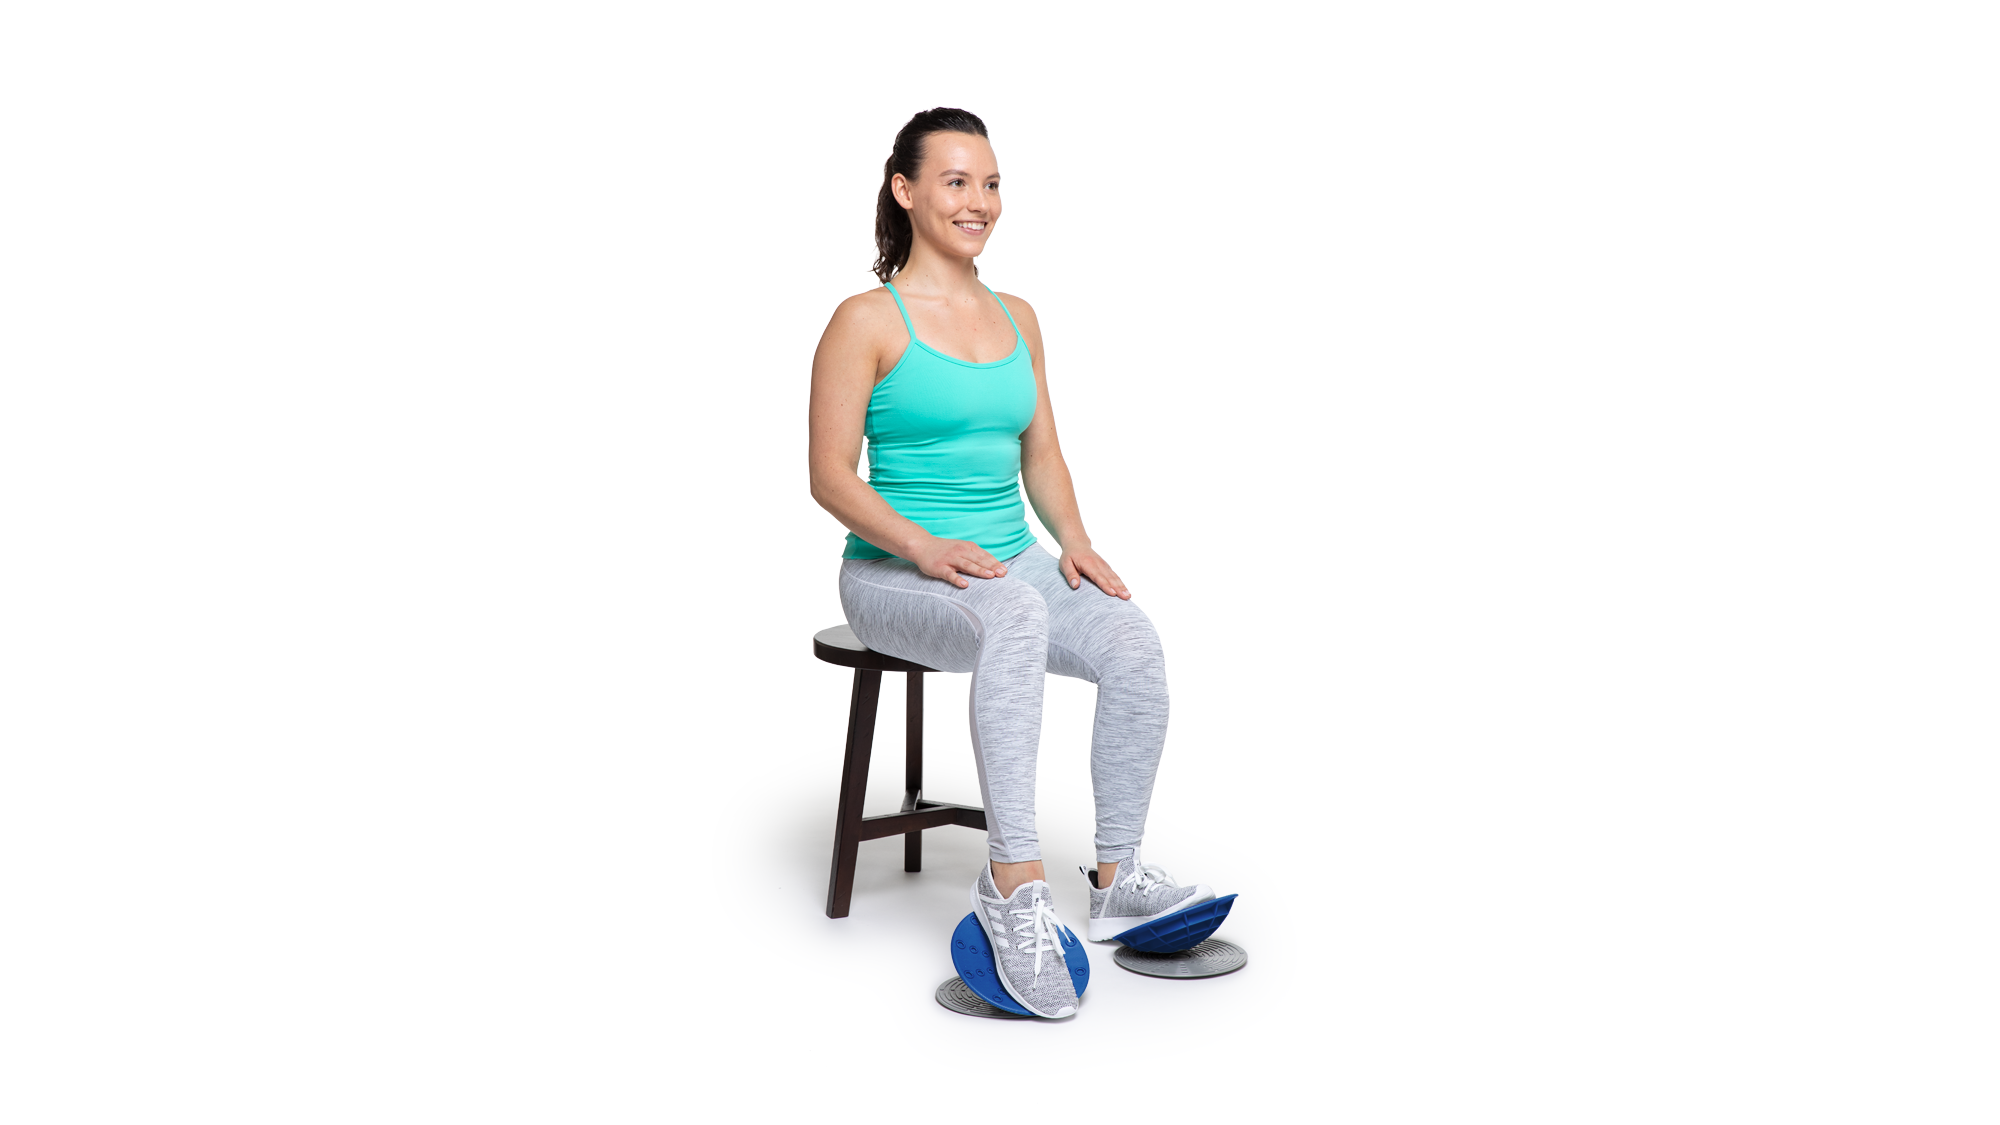 Seated ankle mobility